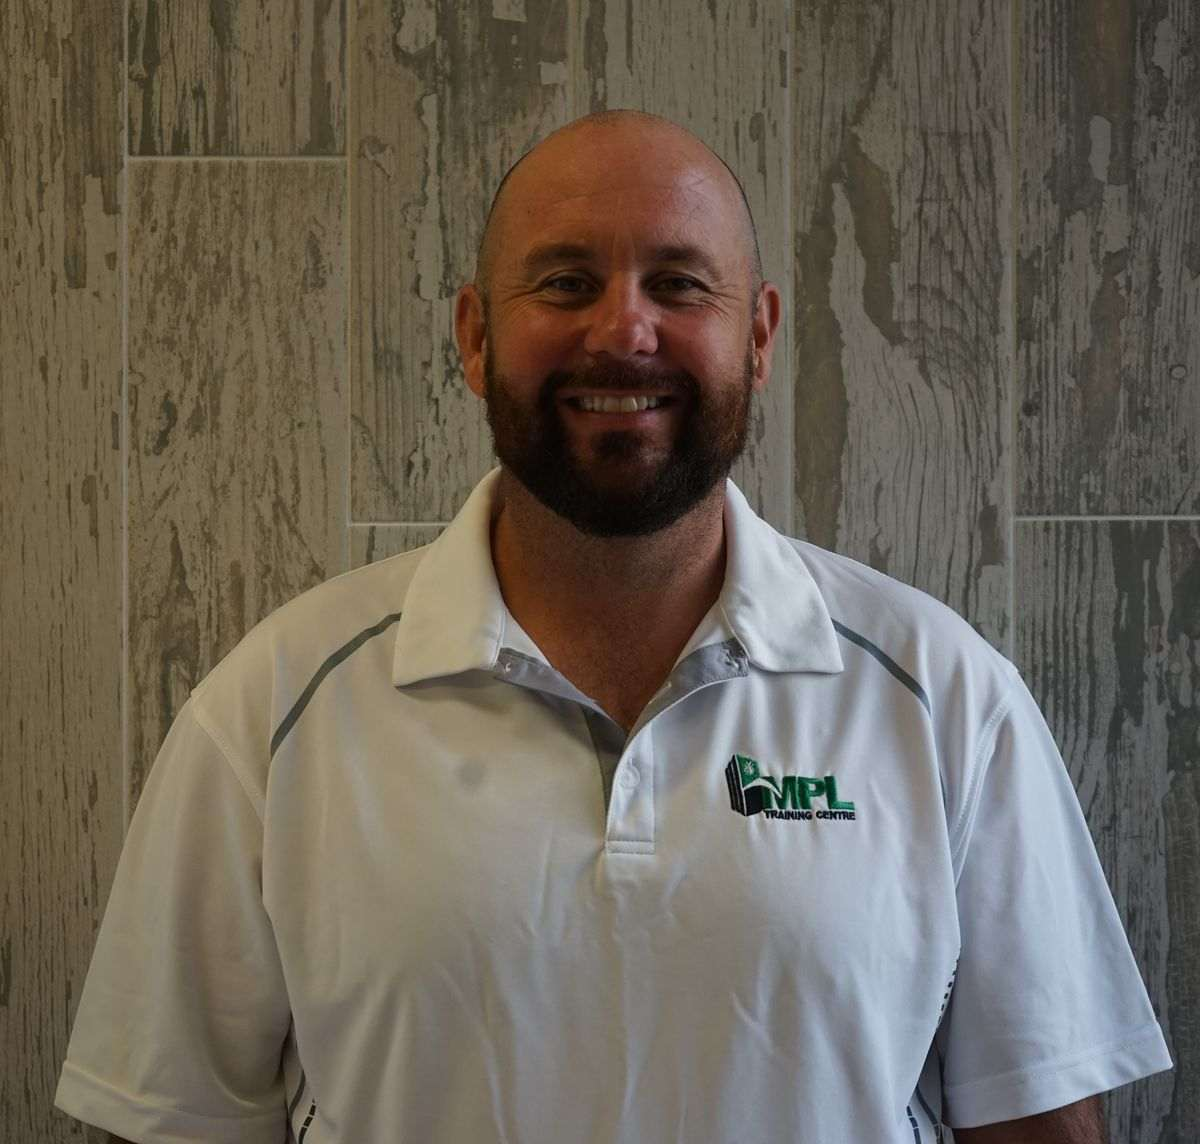 Shane Rich - MPL Trainer and assessor